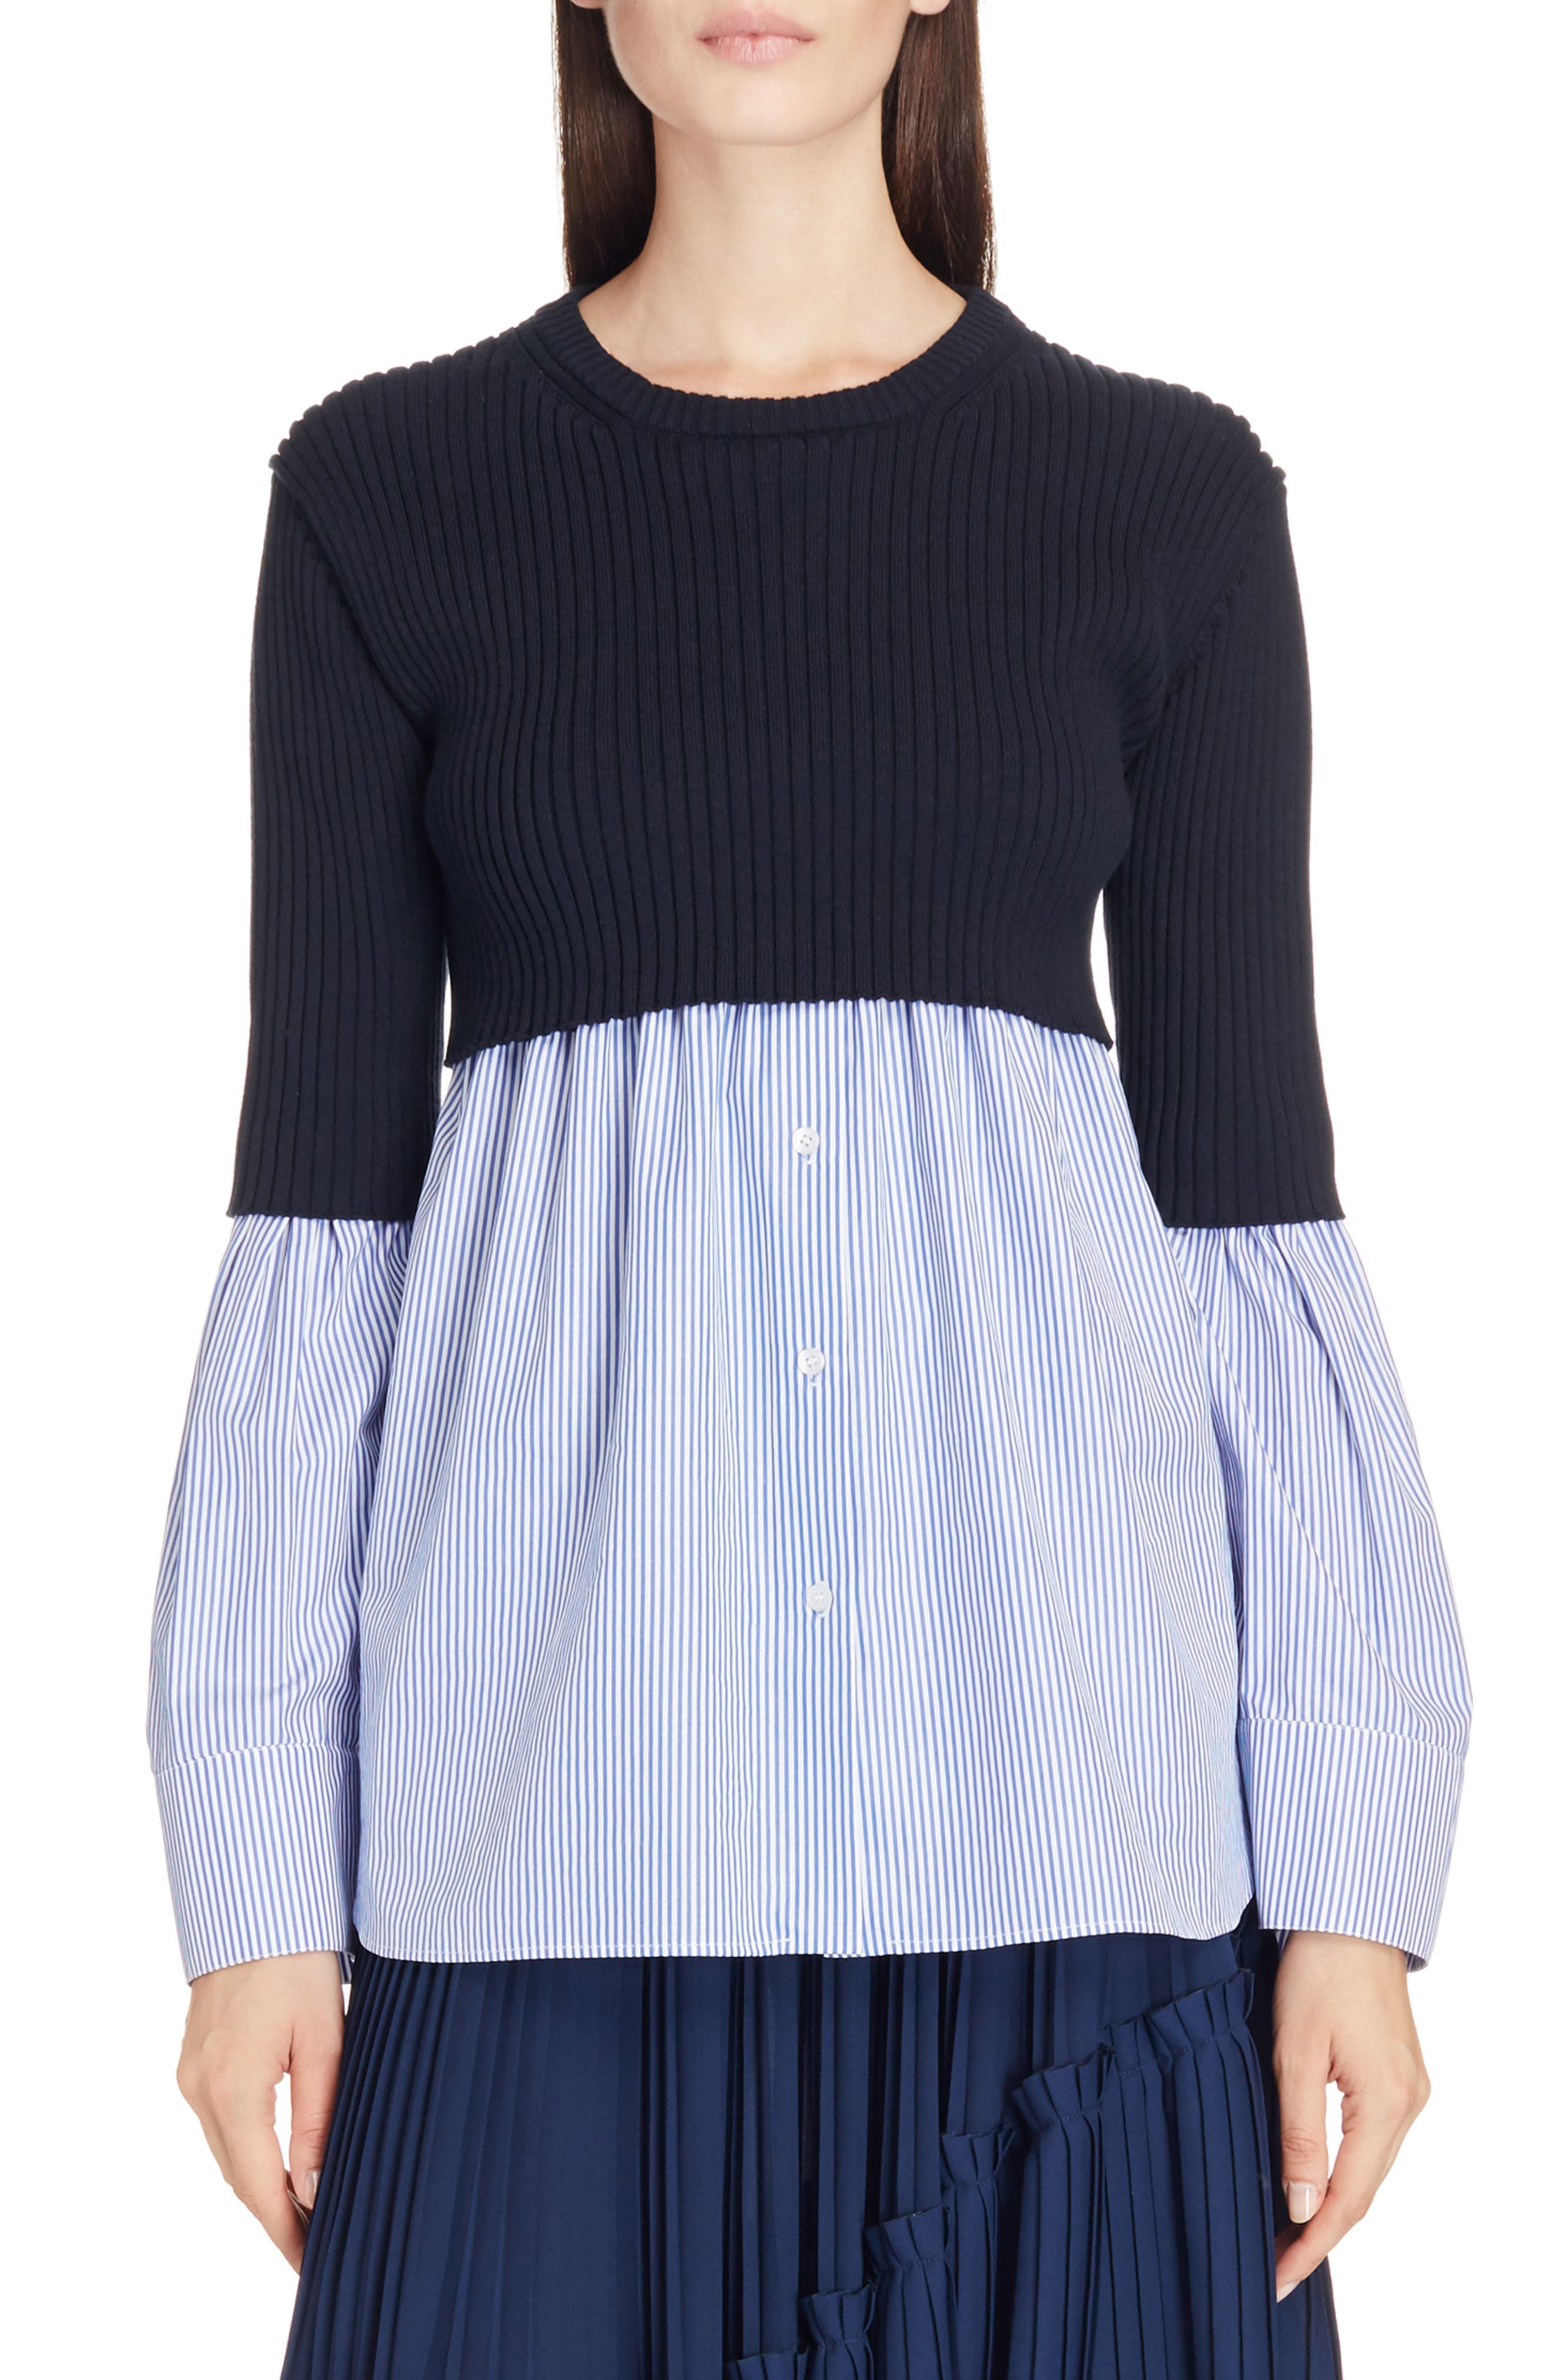 Knit Overlay Cotton Blouse,                         Main,                         color, Periwinkle